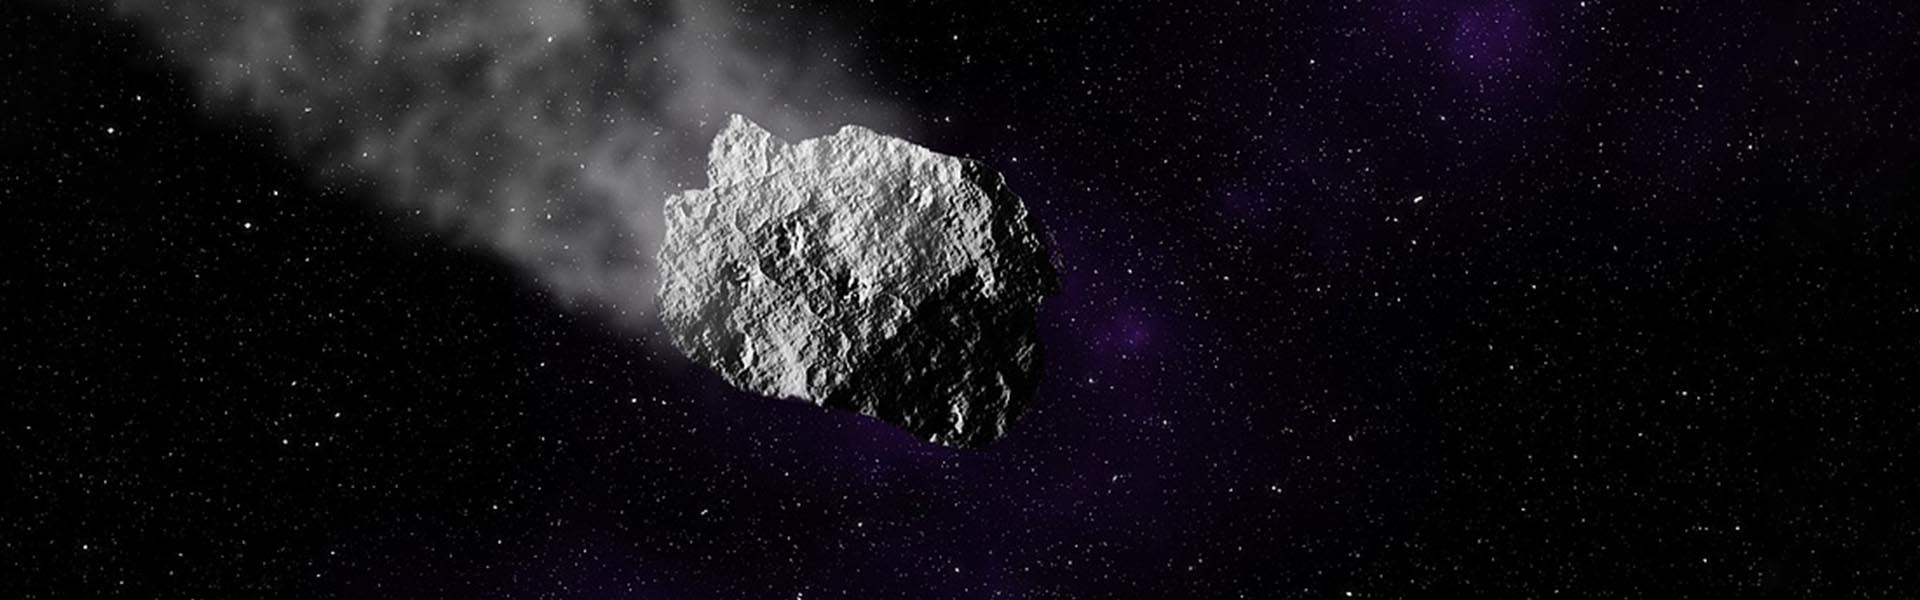 Nation - Nombran asteroide en honor a mexicano